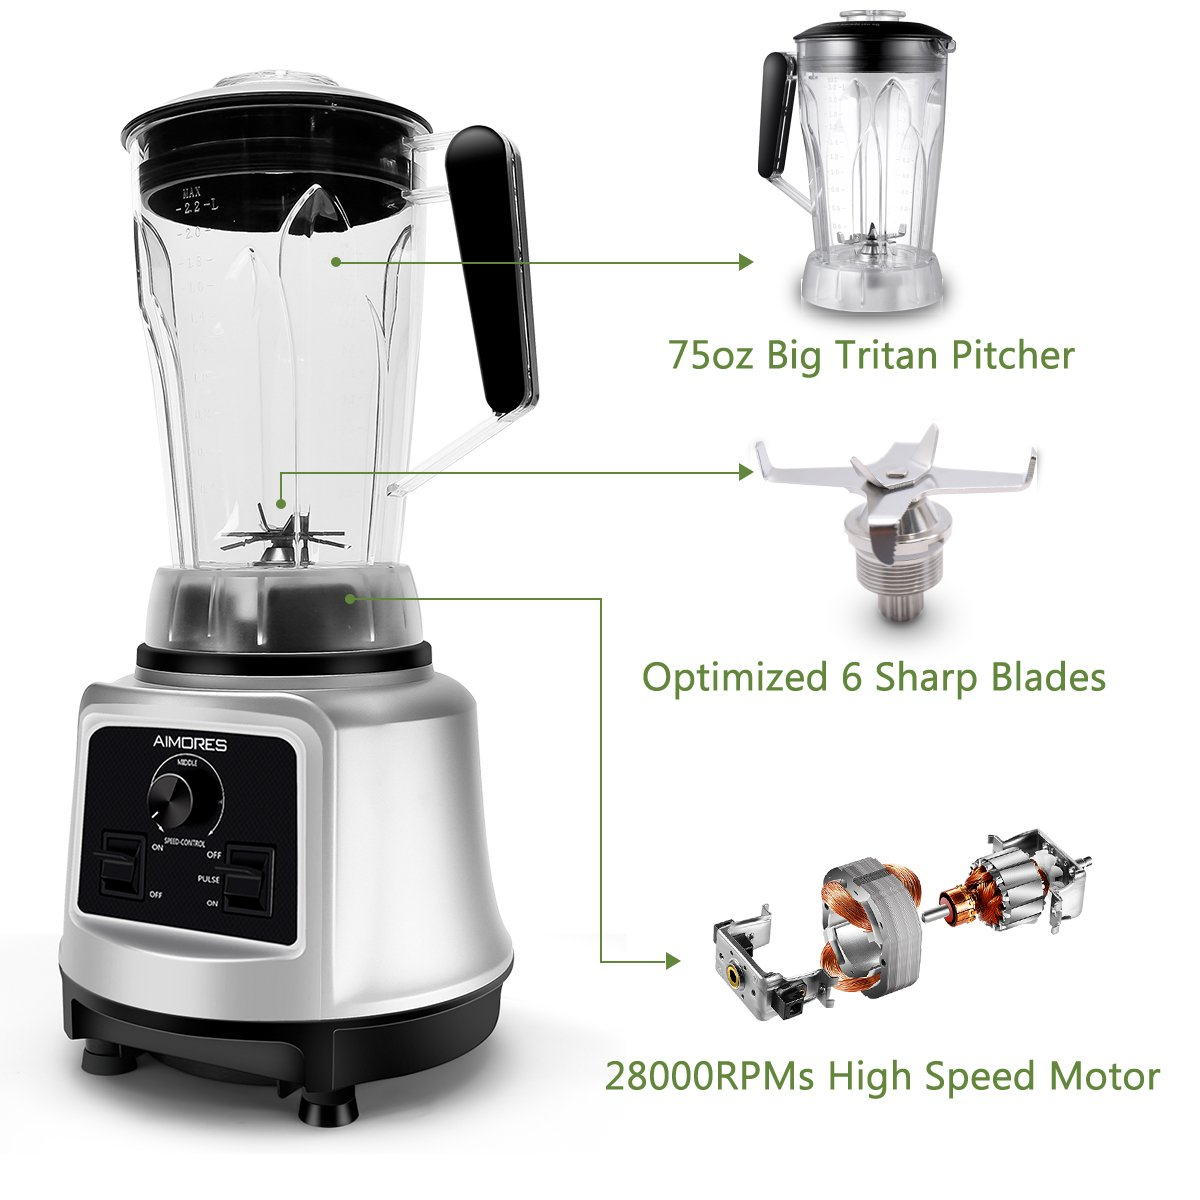 Professional Smoothie Blender Aimores | 750z High Speed Juicer, Ice Cream Maker | Optimized 6 Sharp Blades | Auto Clean & Simple Control | w/ Recipe & Tamper | ETL & FDA Certified (Silver) by ISUN (Image #4)